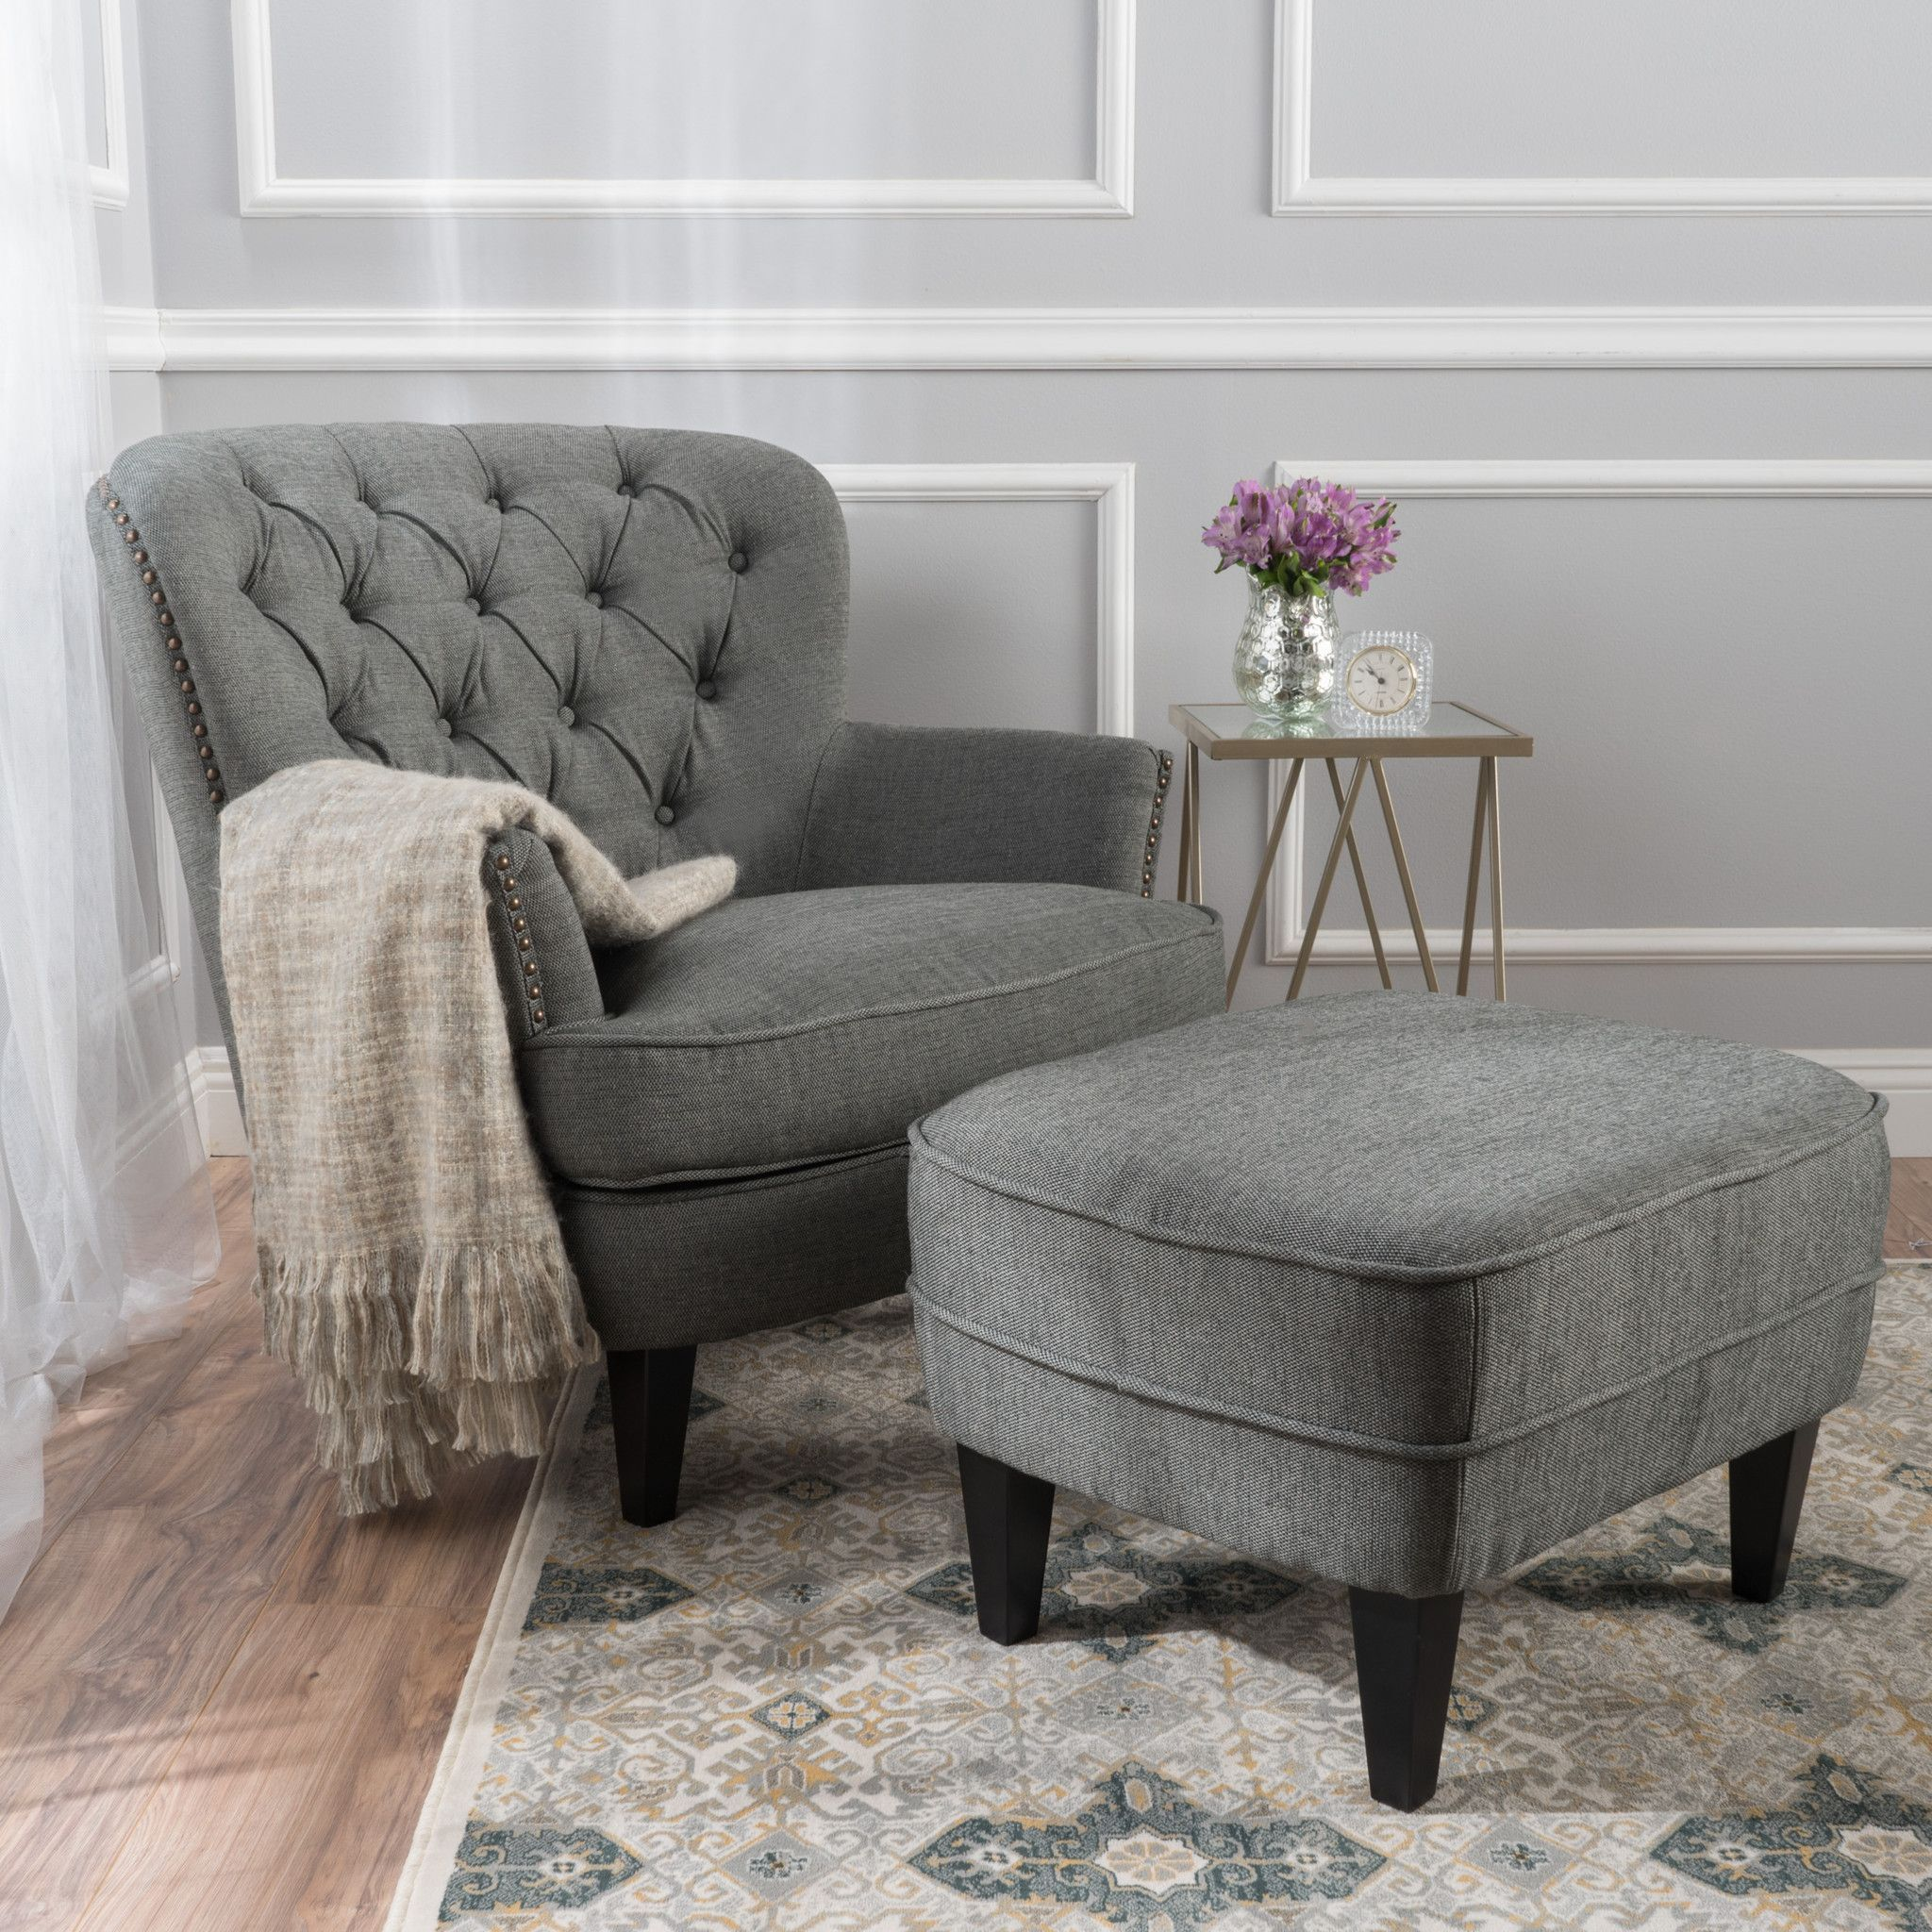 Chairs With Ottomans For Living Room How Much Does A High Chair Cost Teton Grey Fabric Club And Ottoman In 2019 Reading